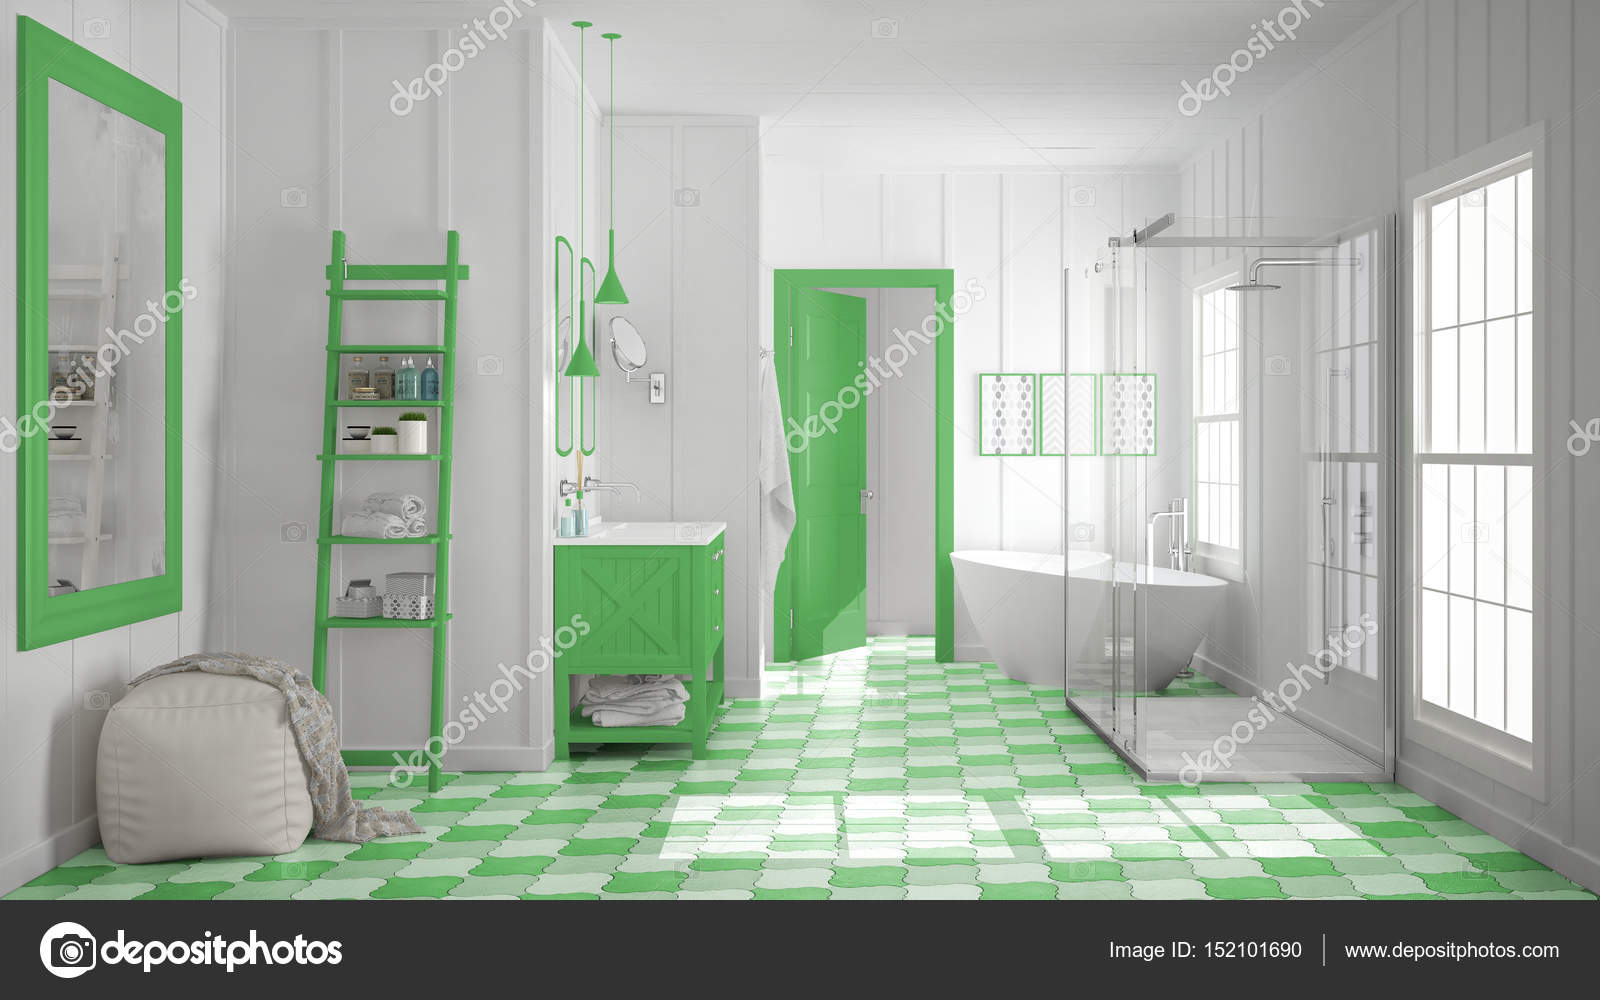 Scandinavian Minimalist White And Green Bathroom Shower Bathtub Decors Classic Vintage Interior Design Photo By ArchiVIz